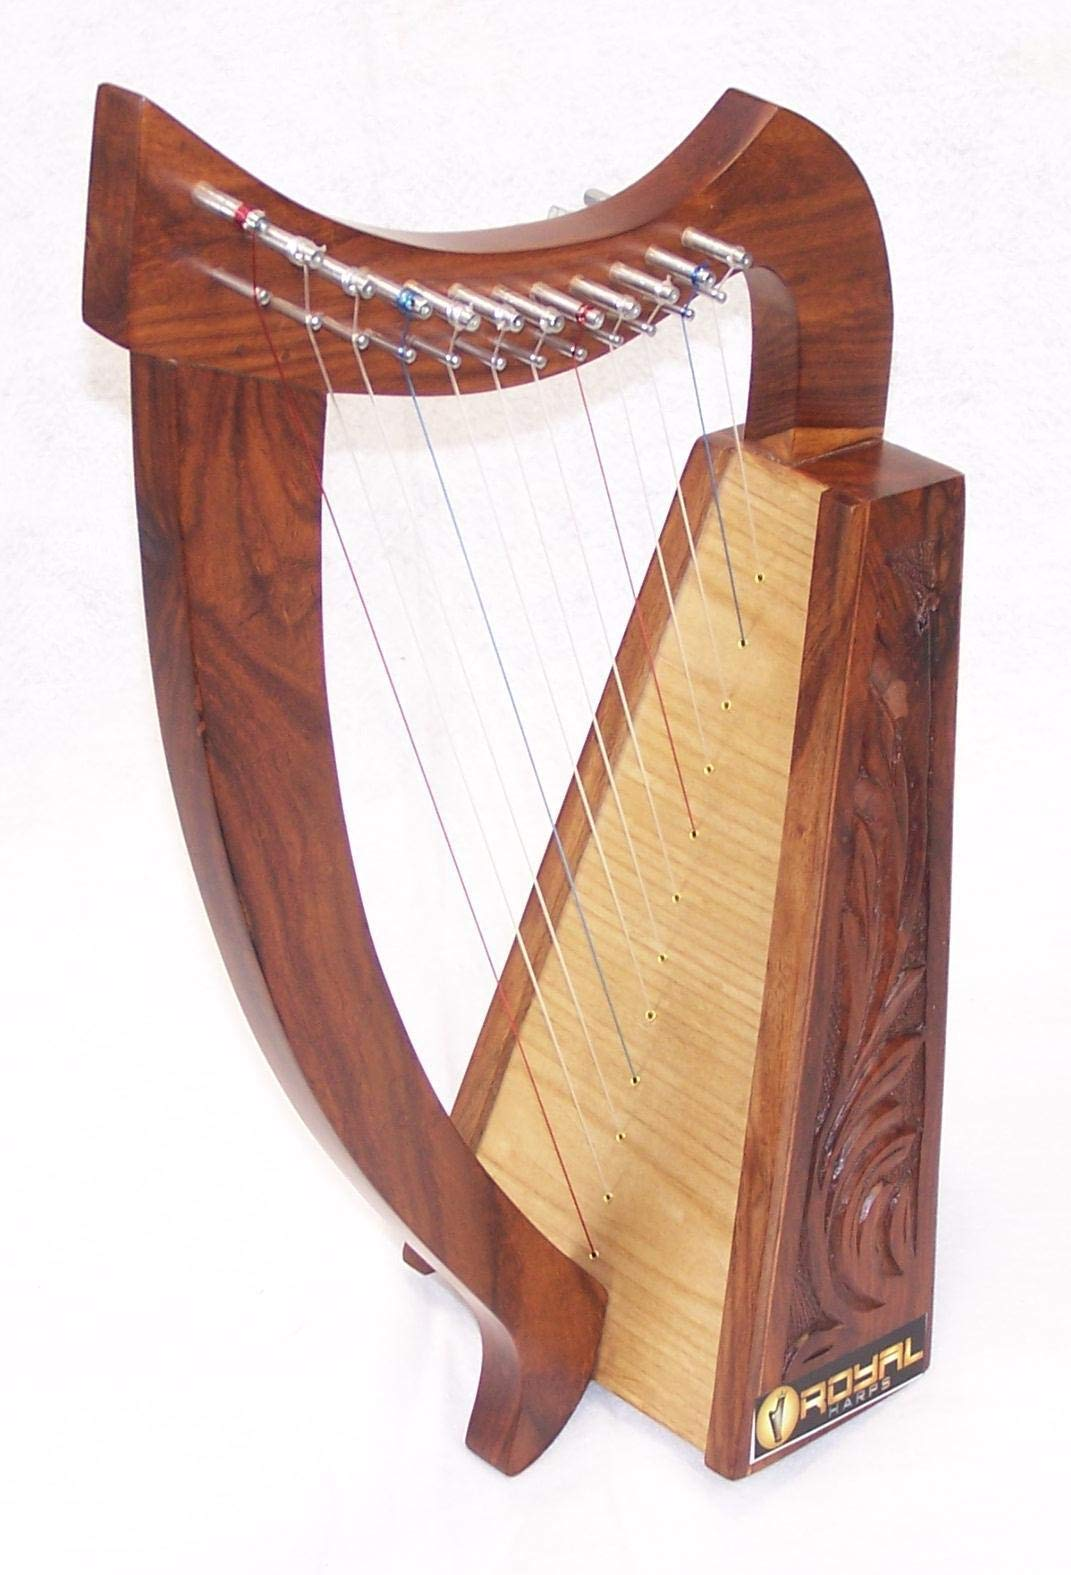 Celtic Irish Baby Harp 12 Strings Solid Wood Free Bag Strings Key by ROYAL HARPS